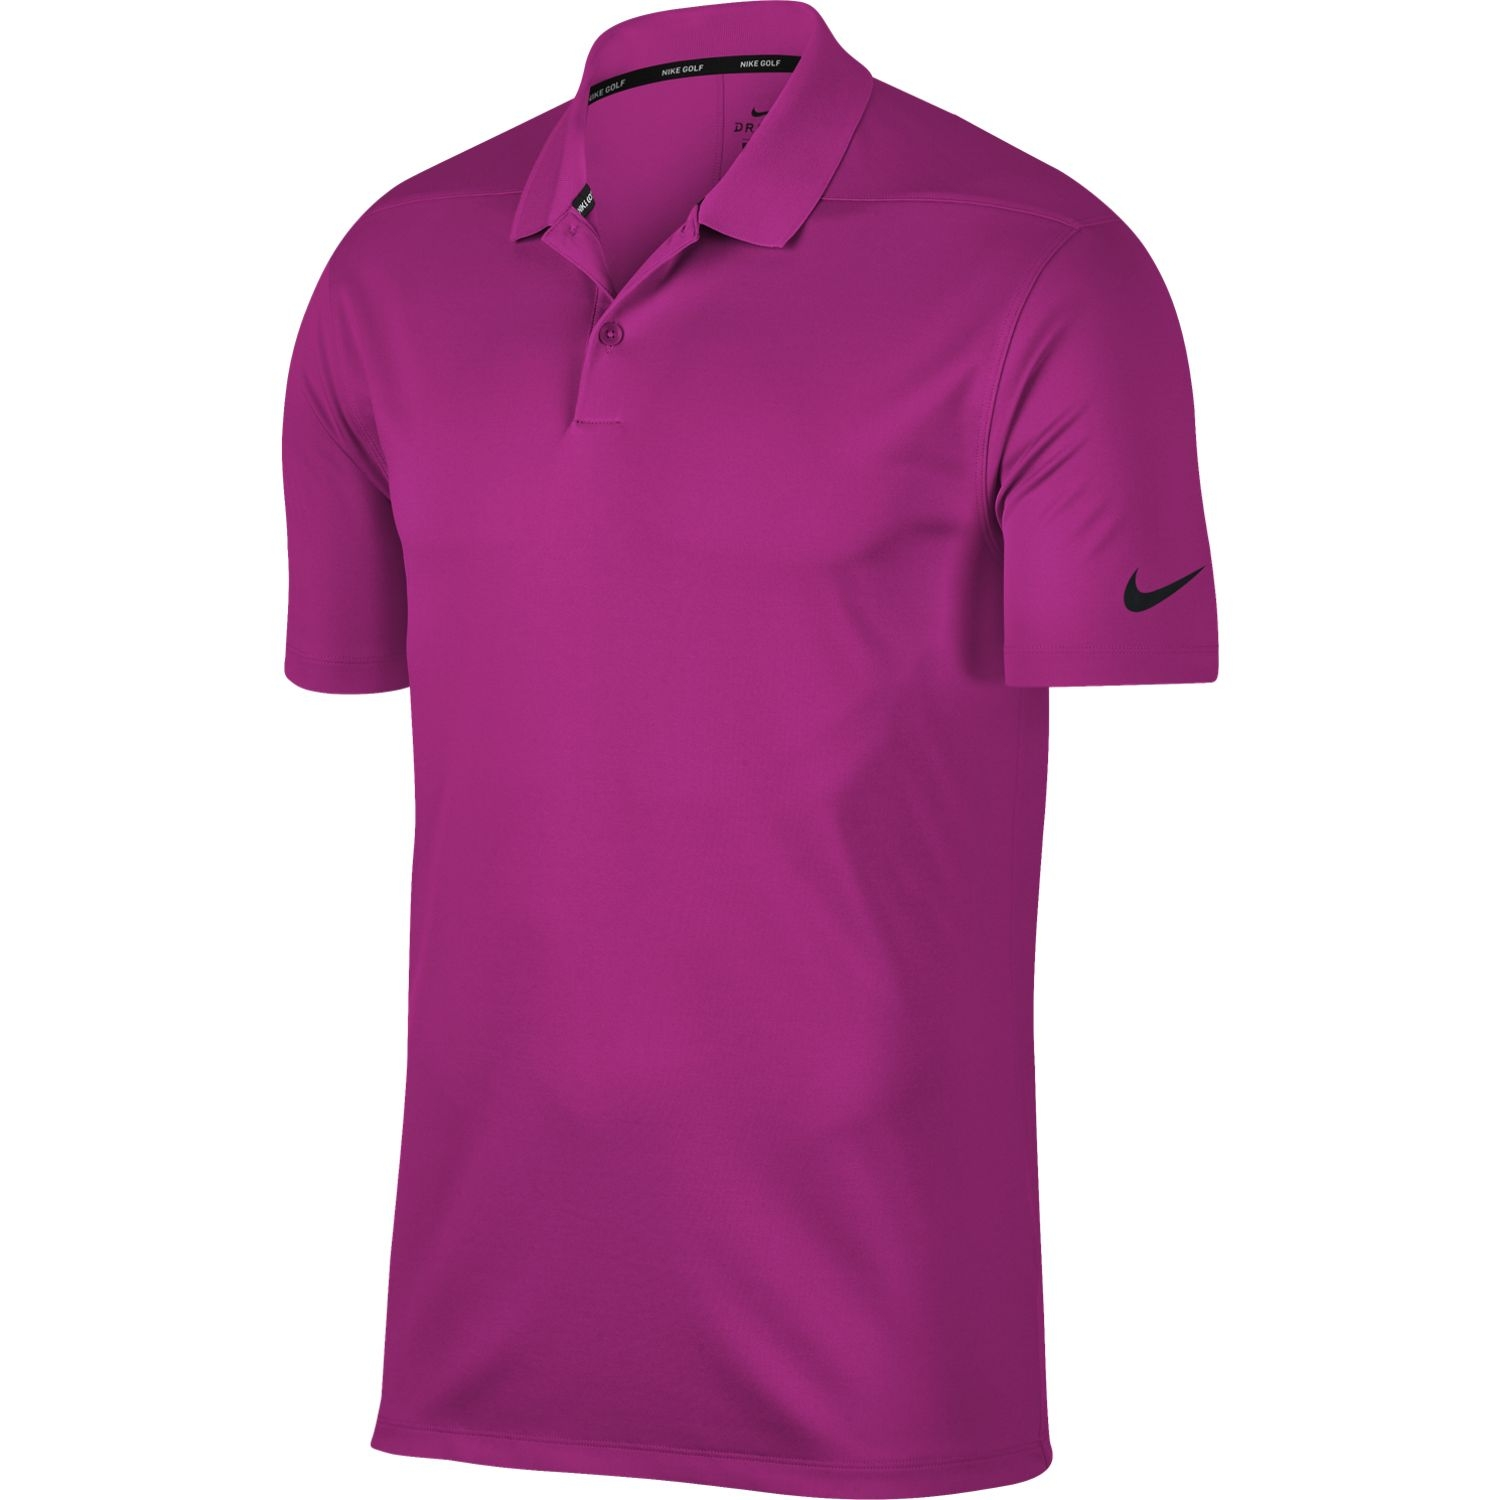 Nike Mens 2018 Dry Victory Solid Golf Polo